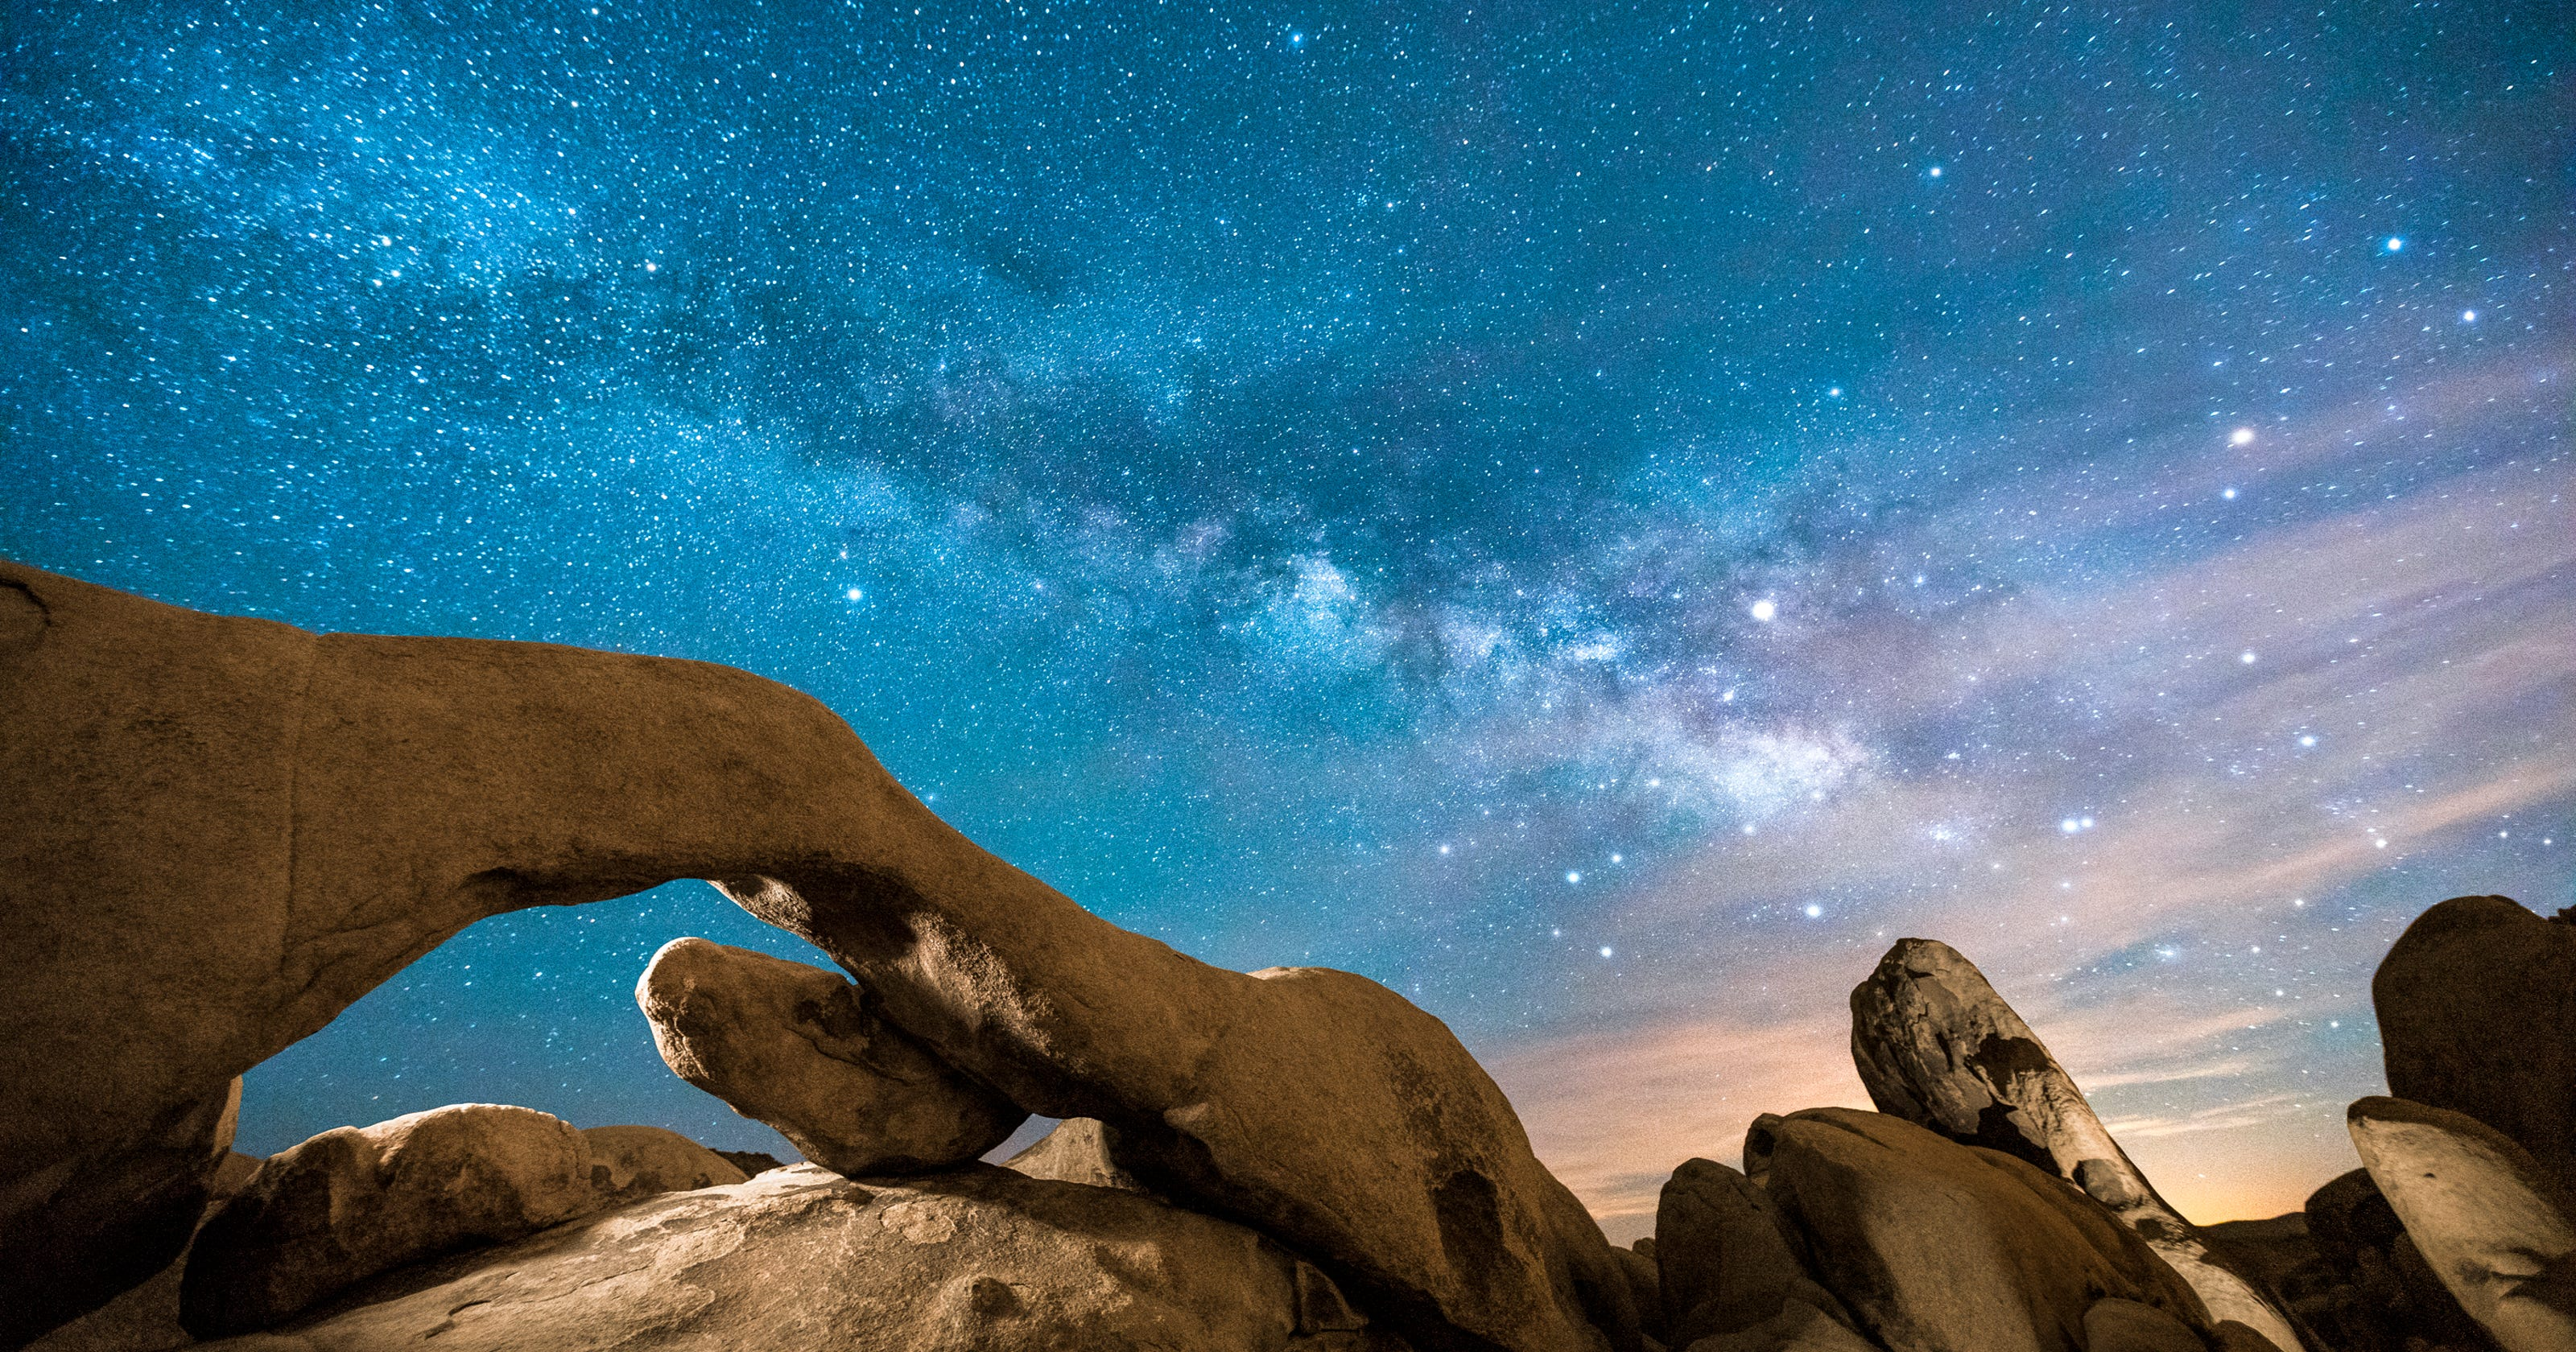 Top spots for stargazing in the Southern California desert